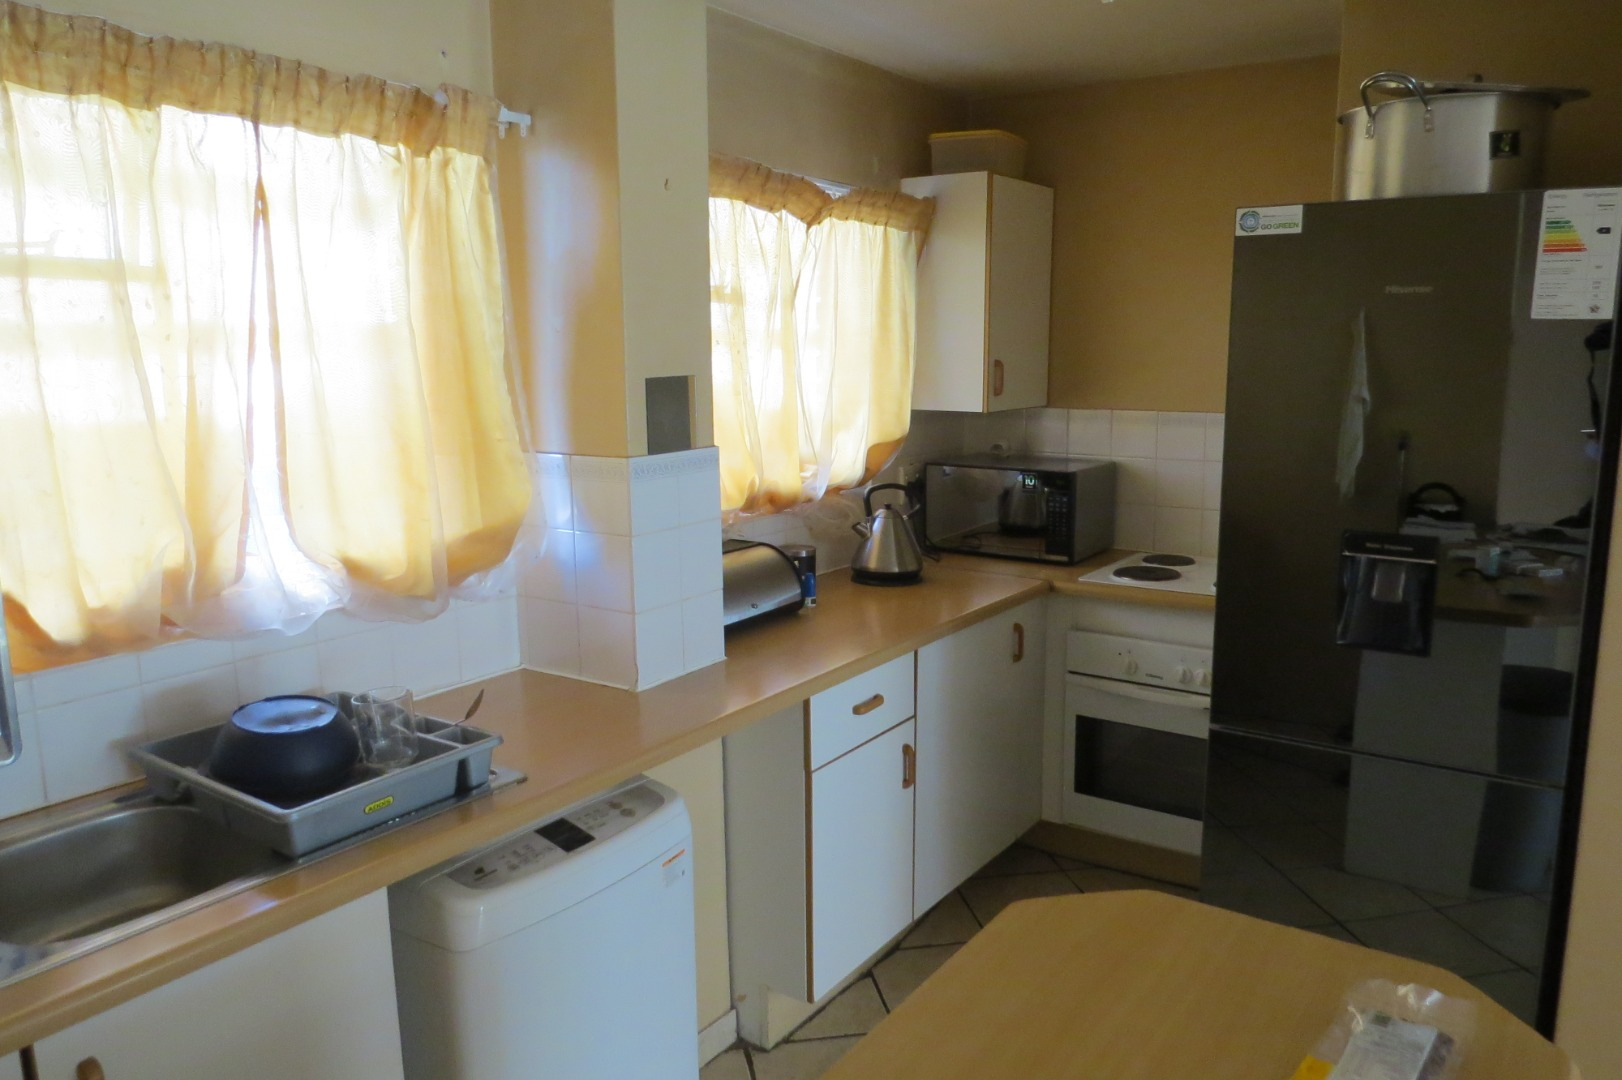 2 Bedroom Apartment / Flat To Rent in Die Hoewes